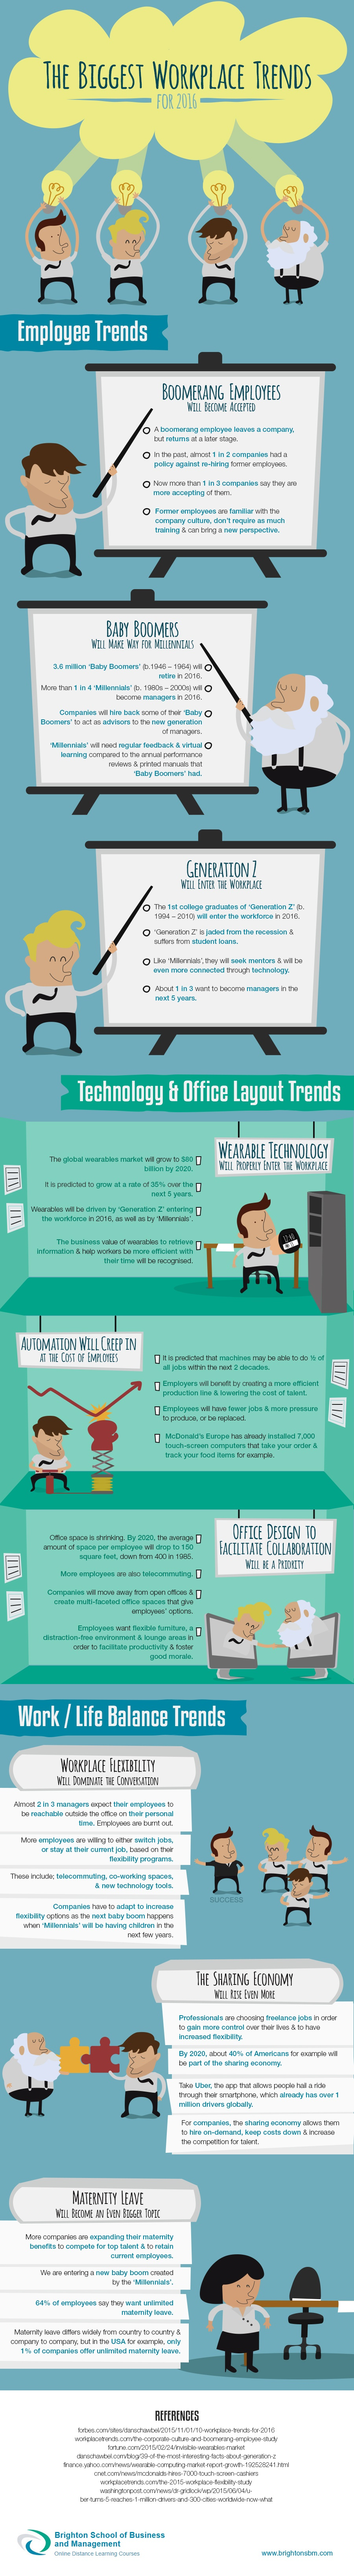 The-Biggest-Workplac-Trends-for-2016-Infographic1